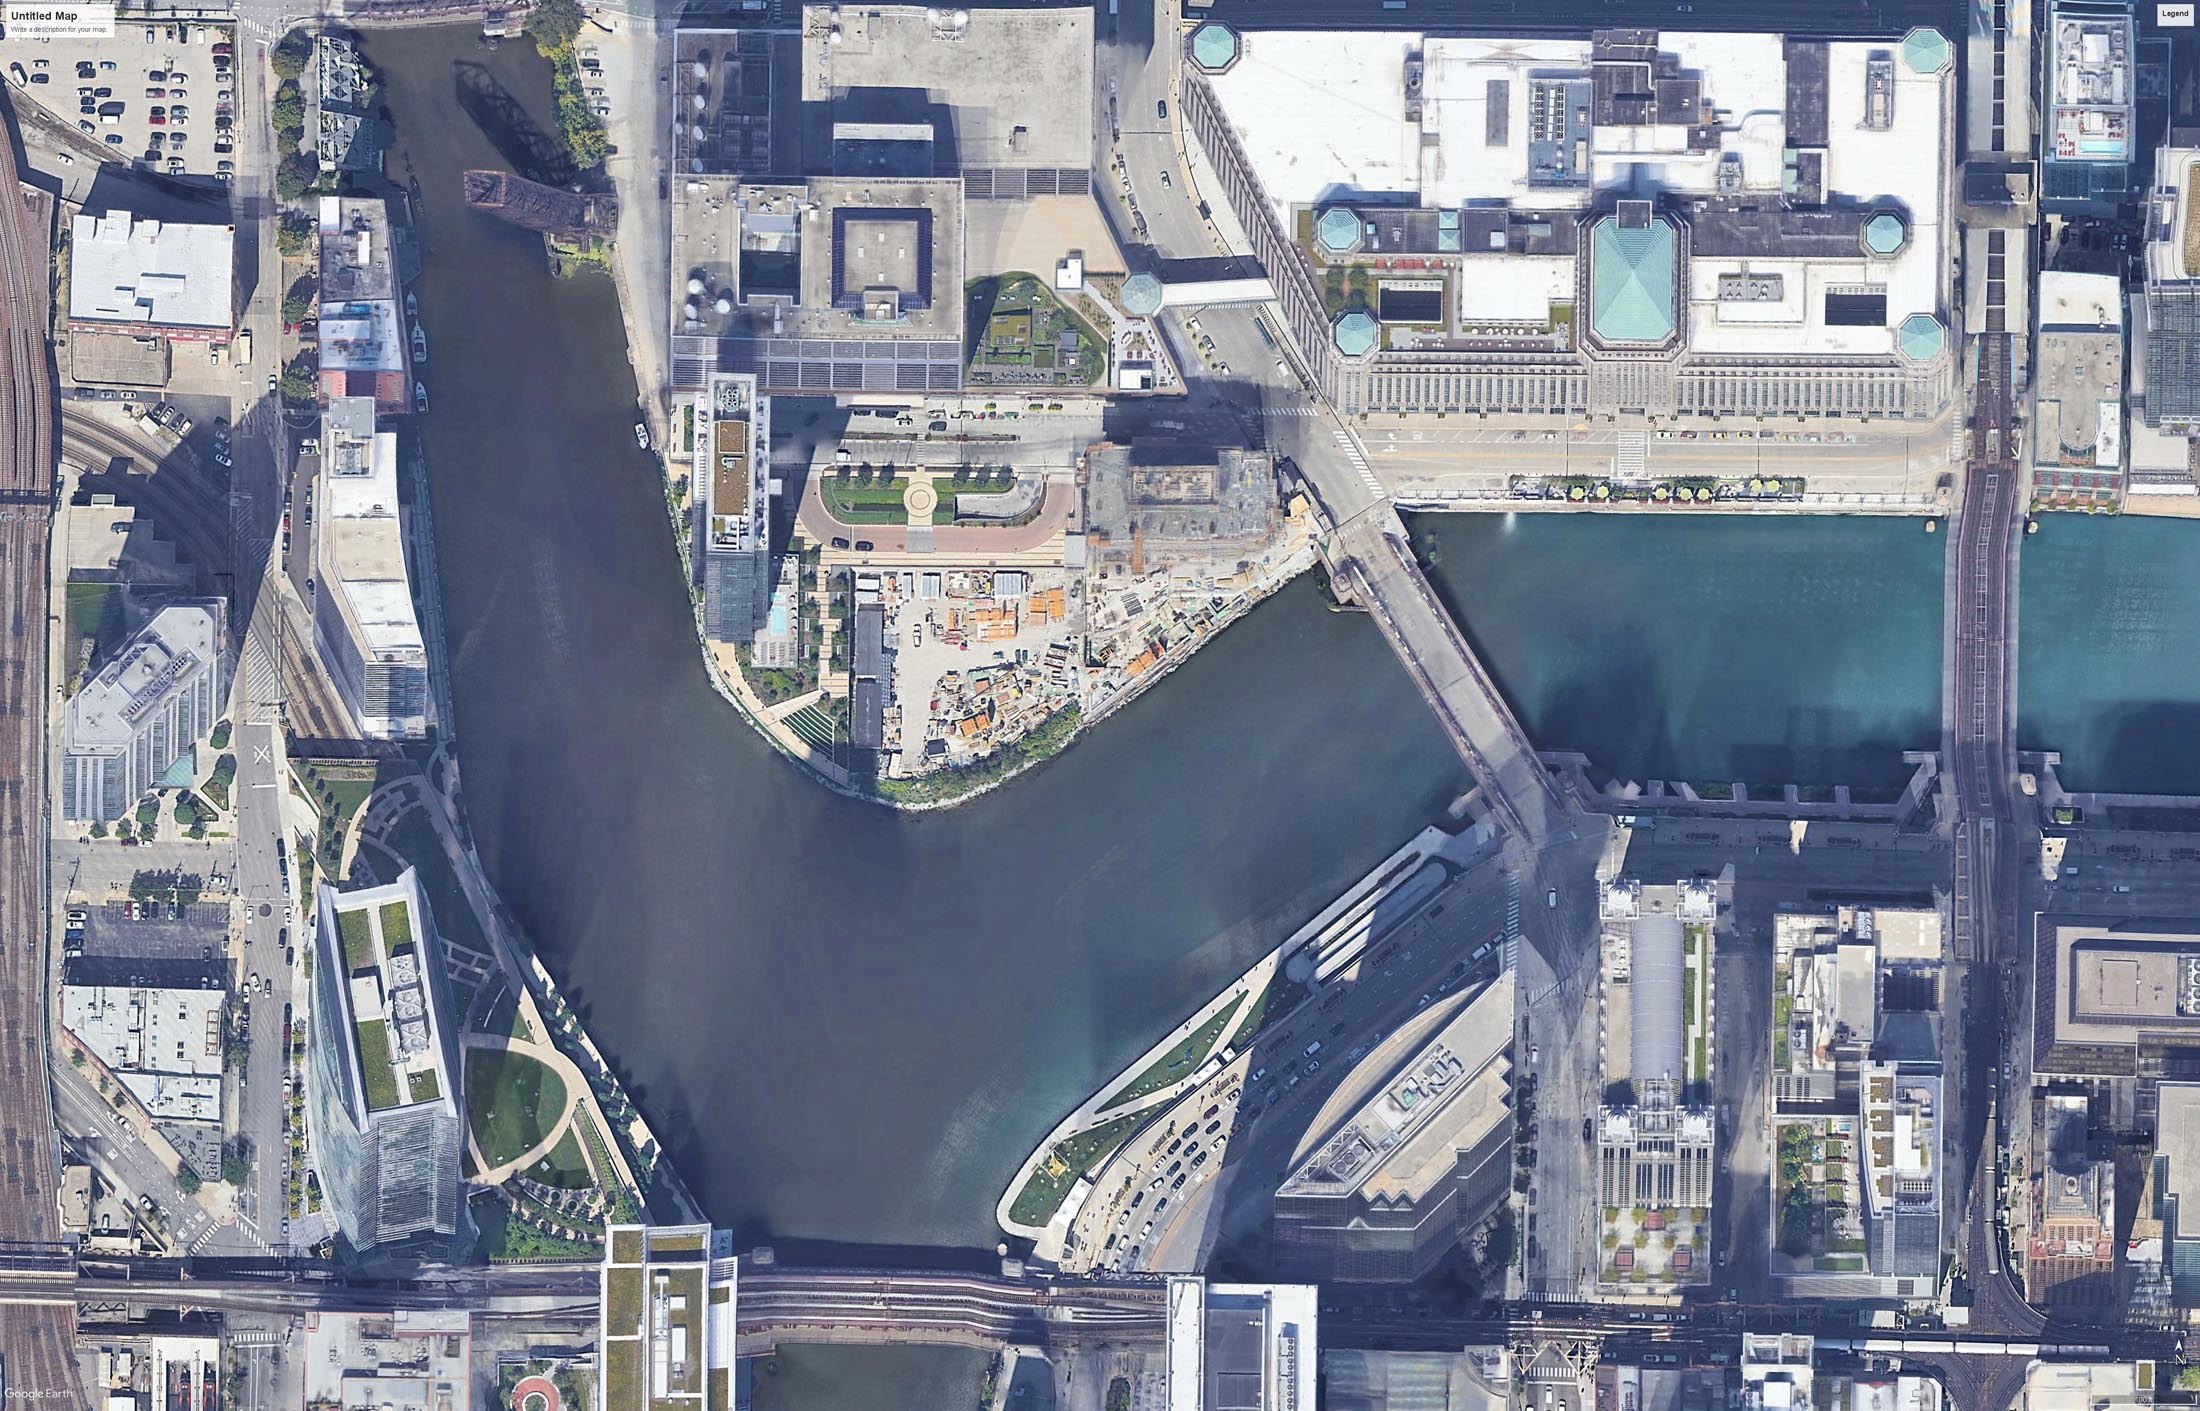 Fig 9 - The New Wolf Point Development - The First Site to be Built Upon in Chicago